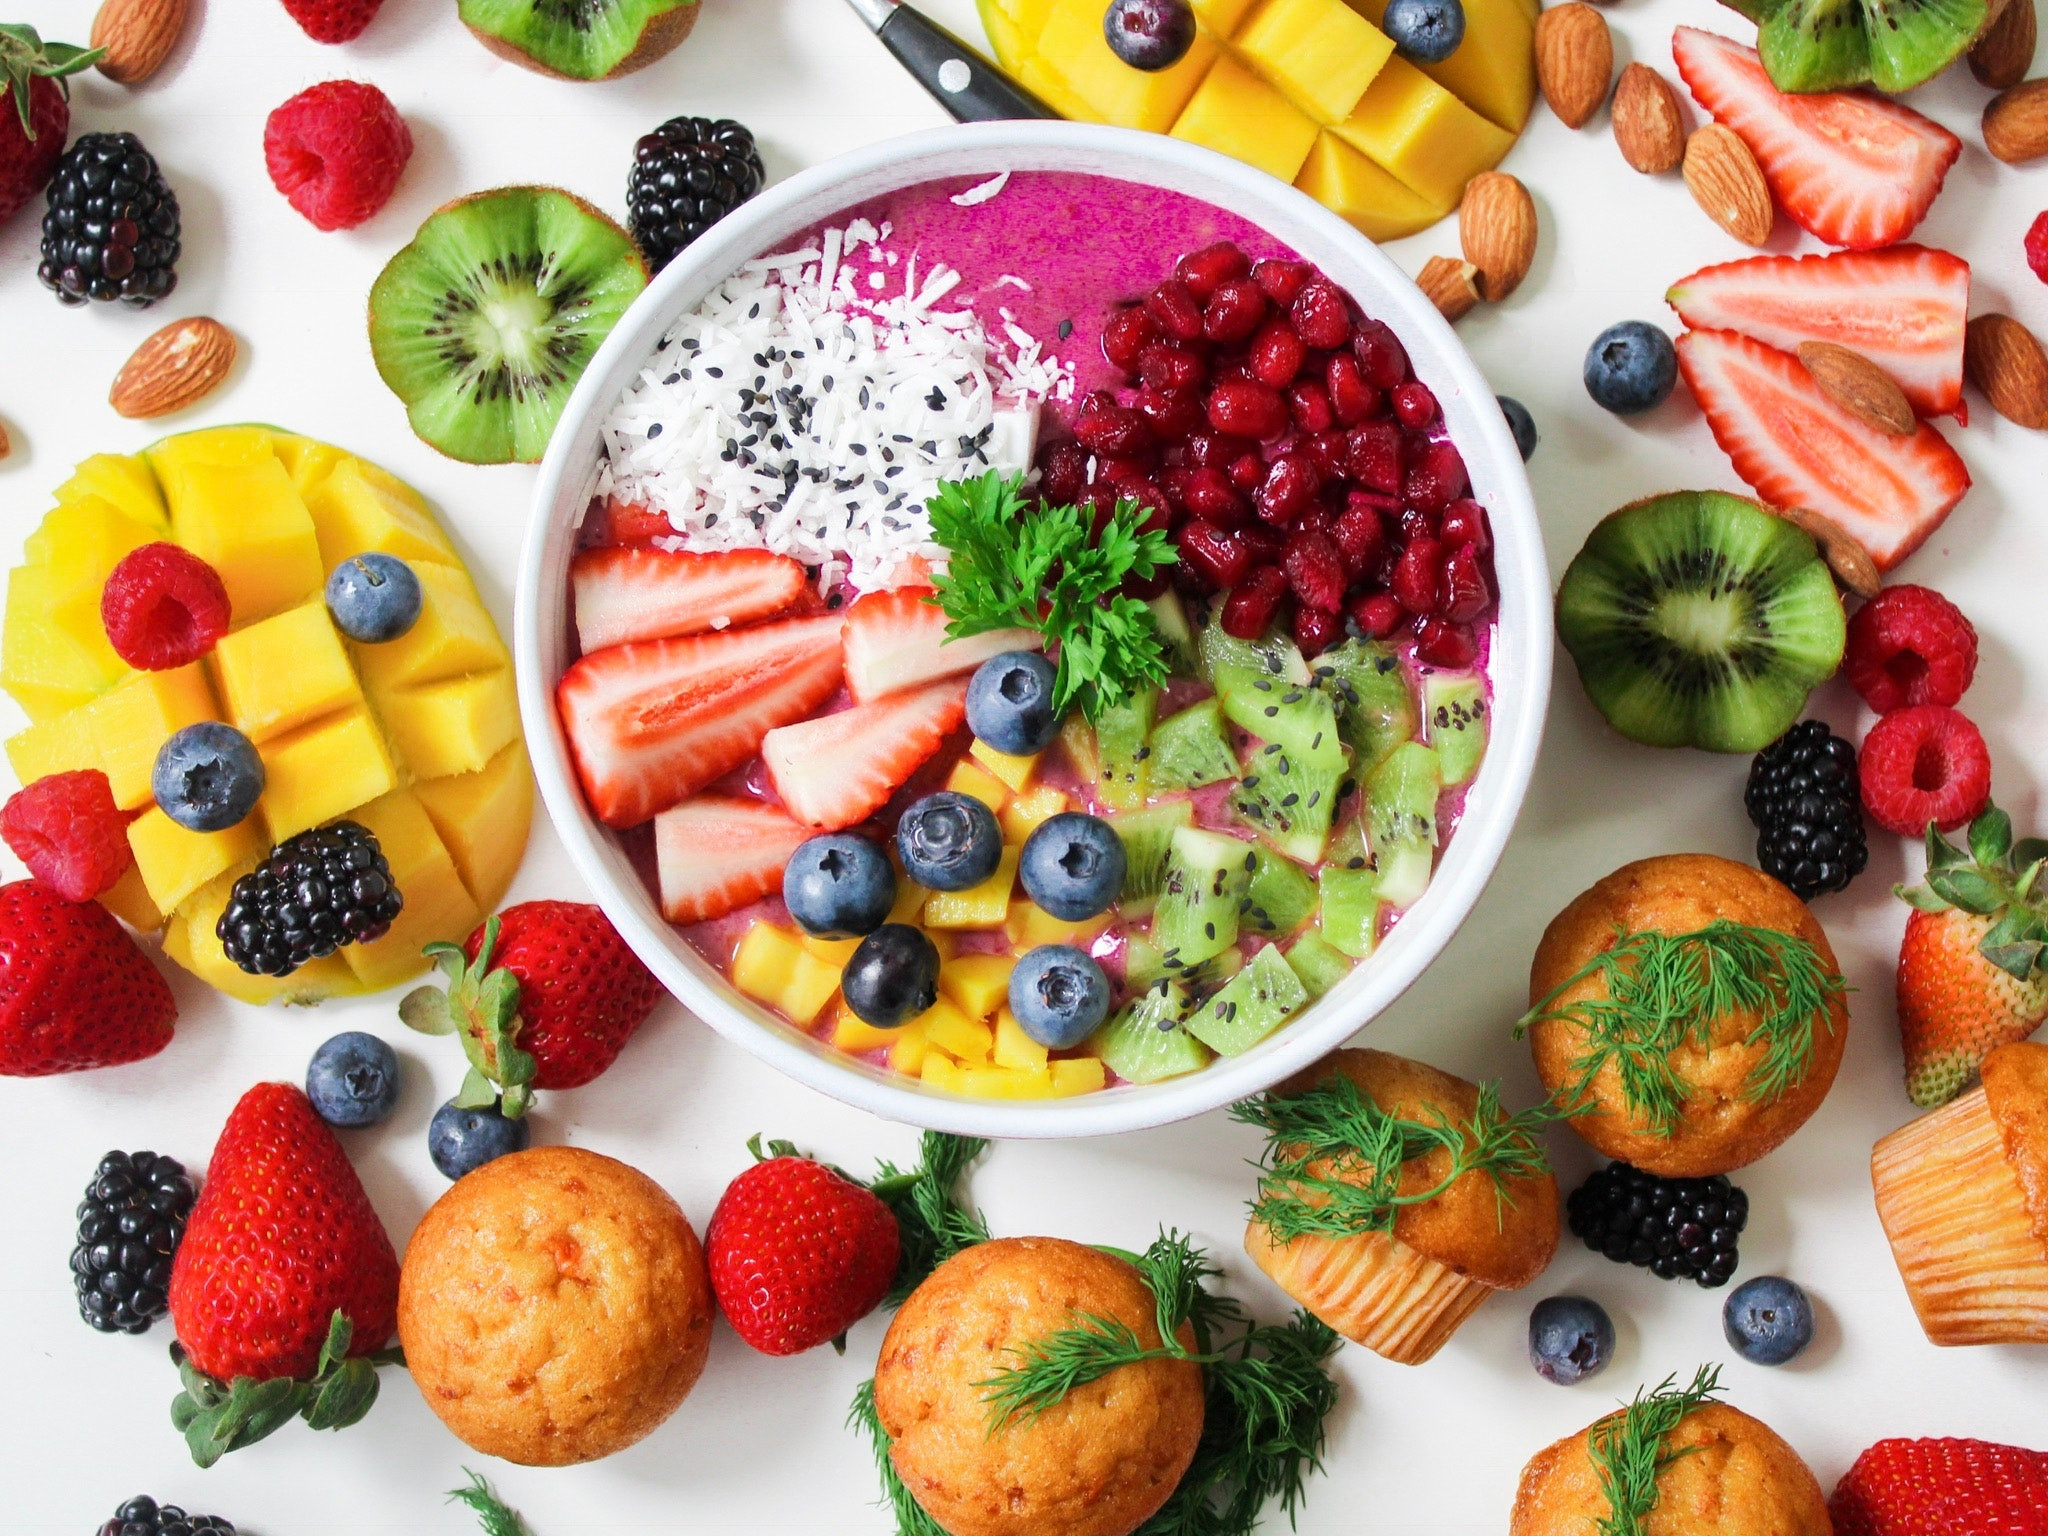 Online Nutrition Coaching Session